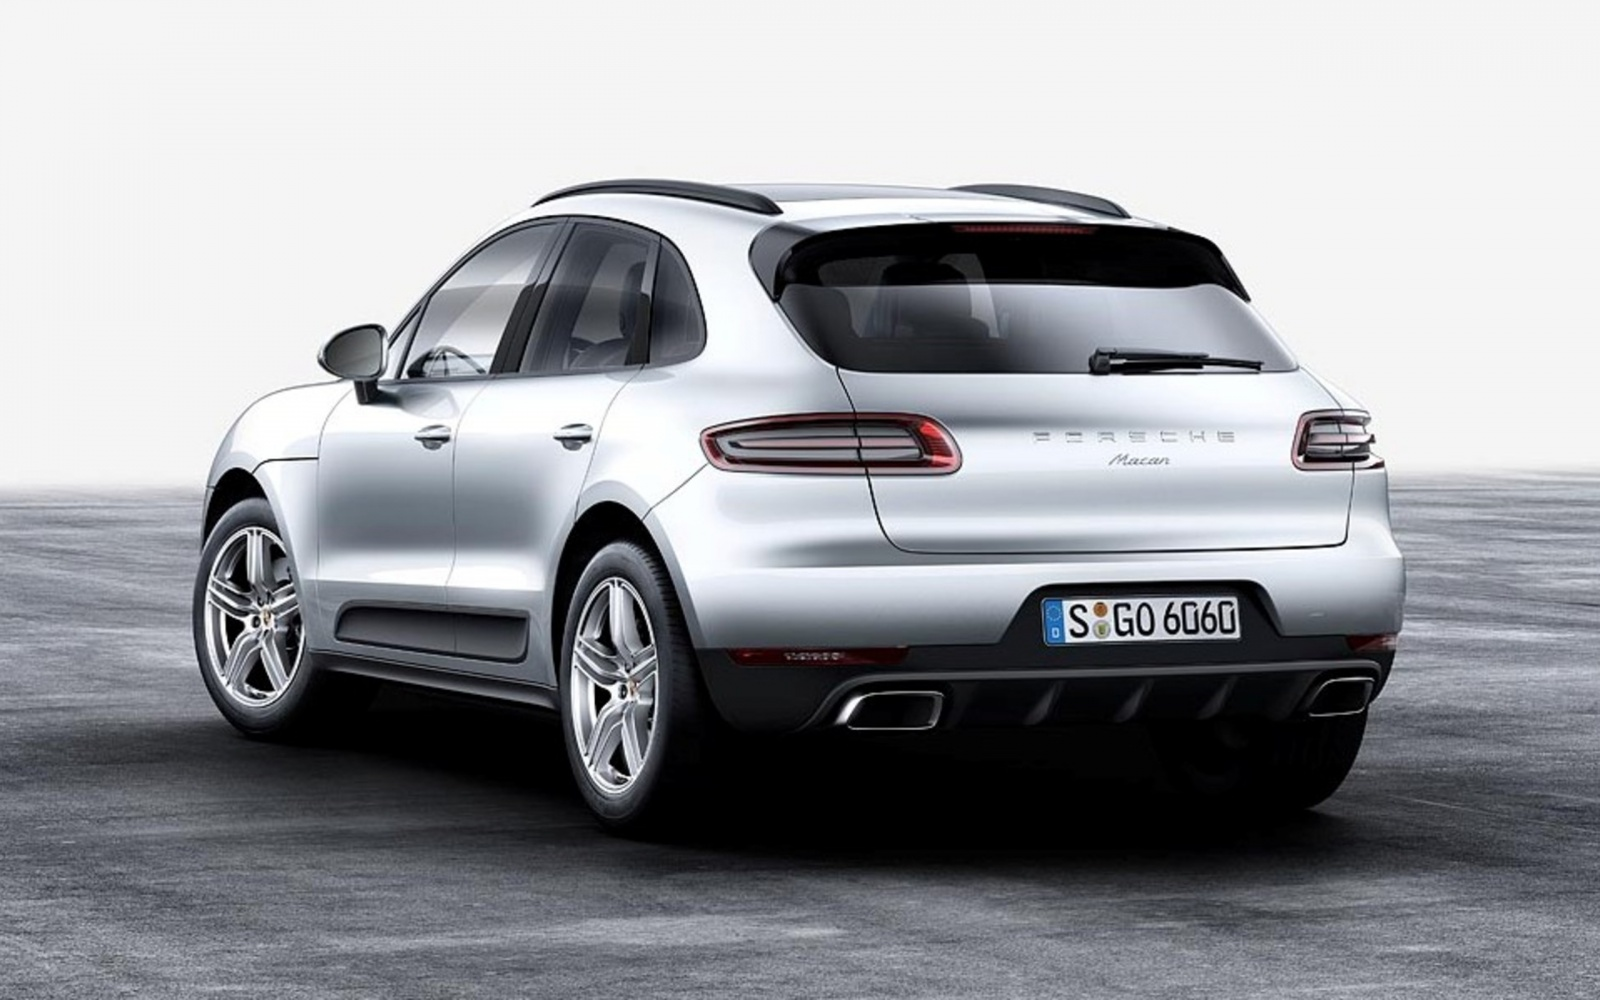 10_2017-Porsche-Macan-Four-Cylinder-Turbo